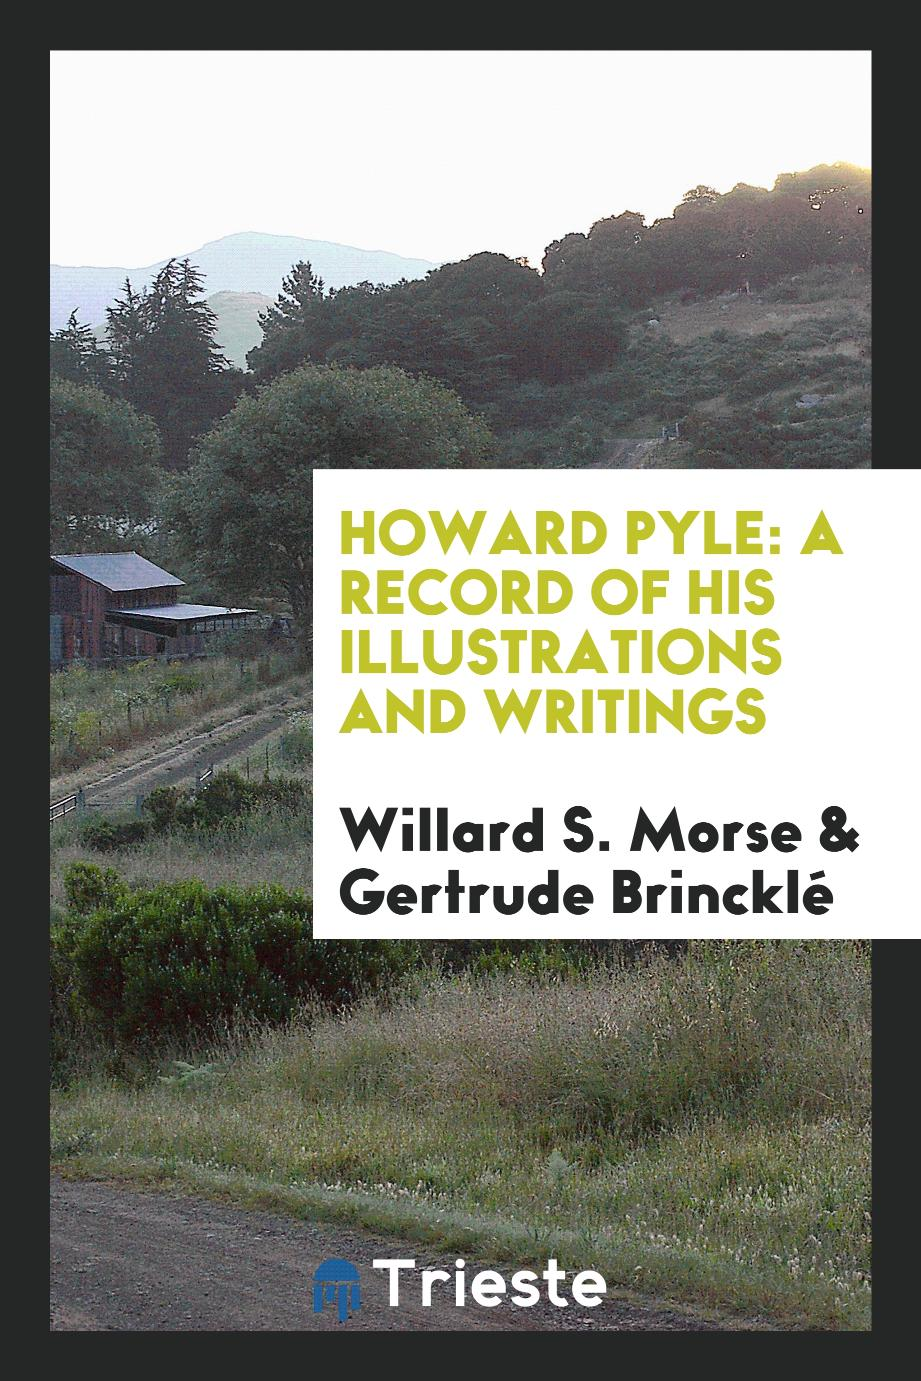 Howard Pyle: A Record of His Illustrations and Writings